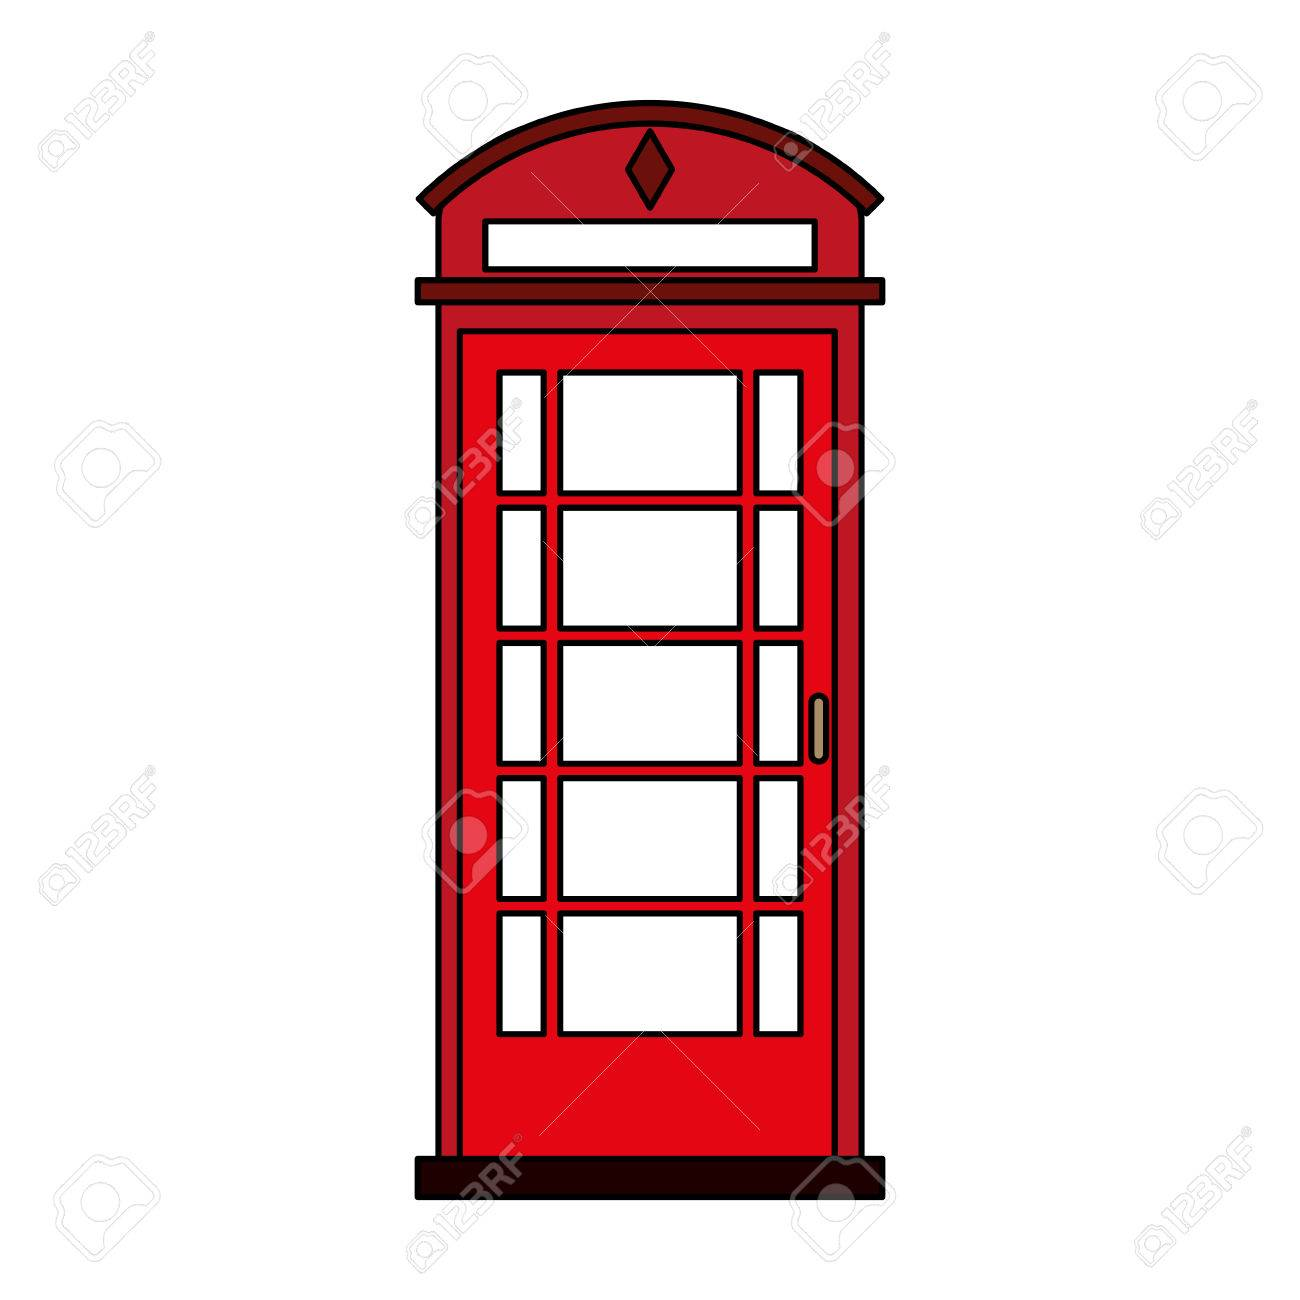 London Phone Booth Clipart.